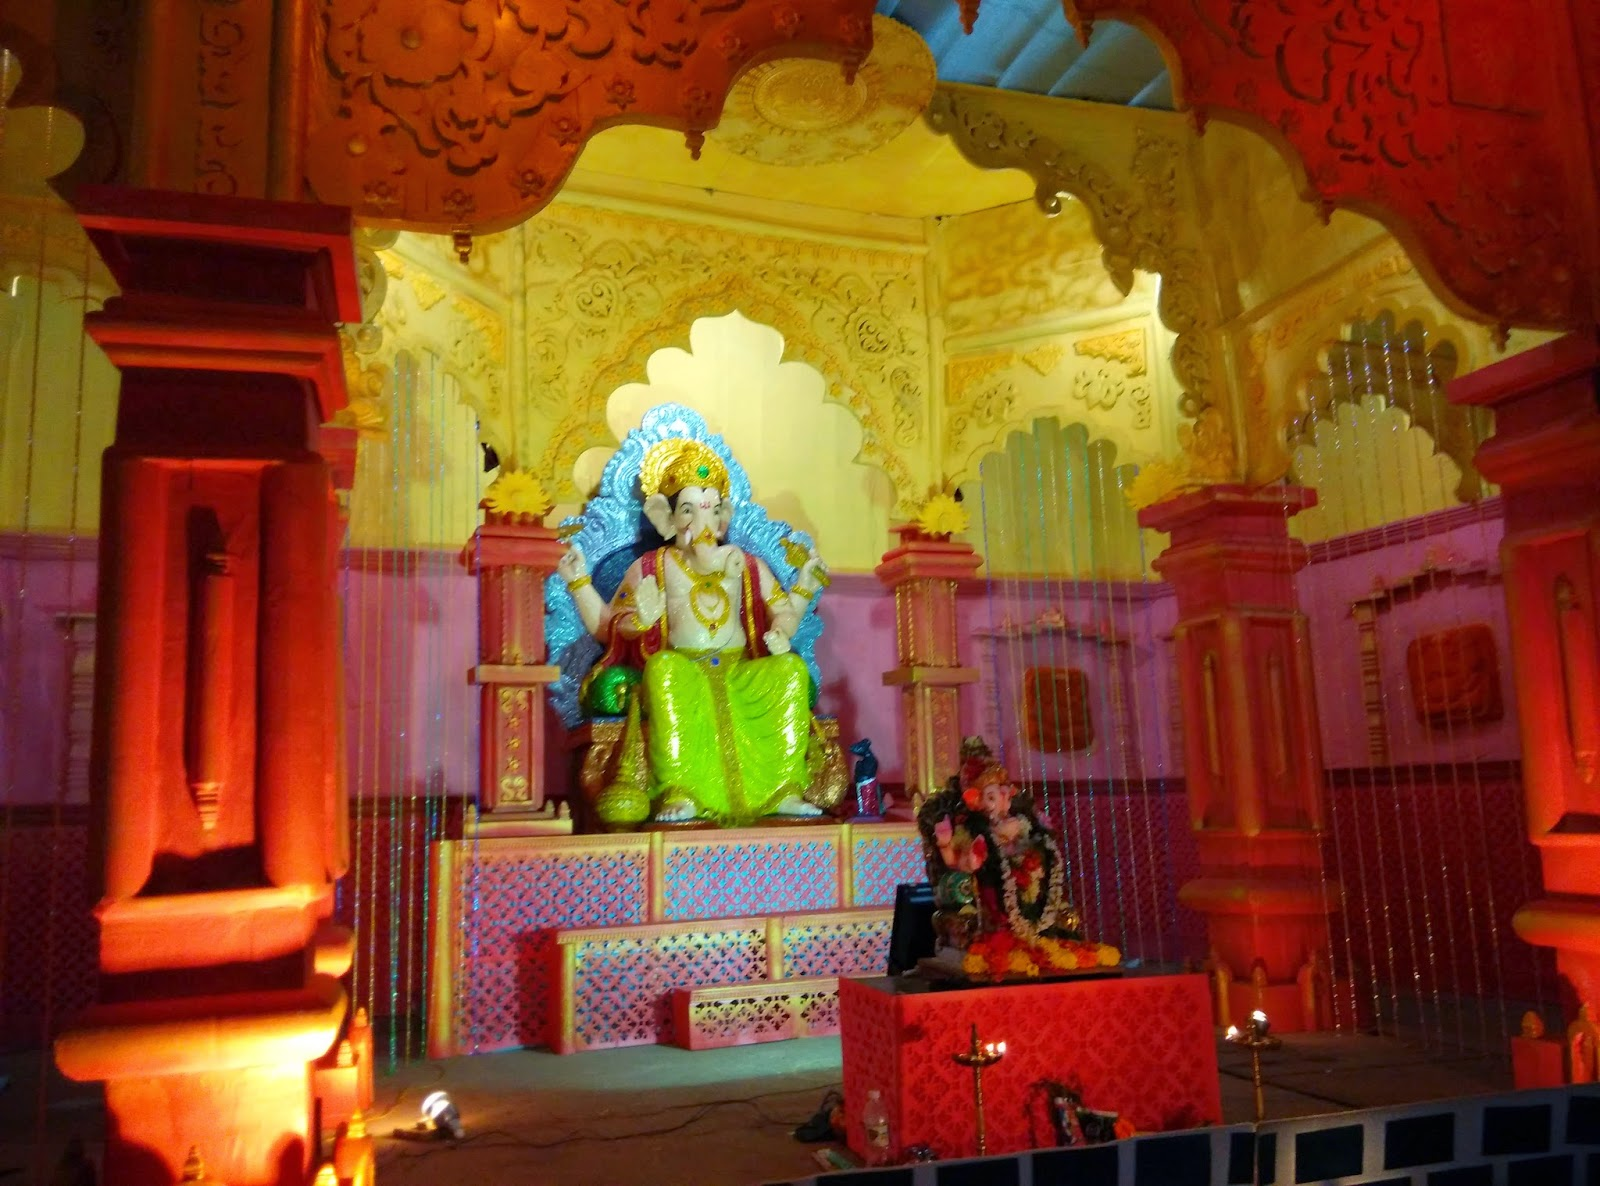 Lalbaugcha Raja in Goa